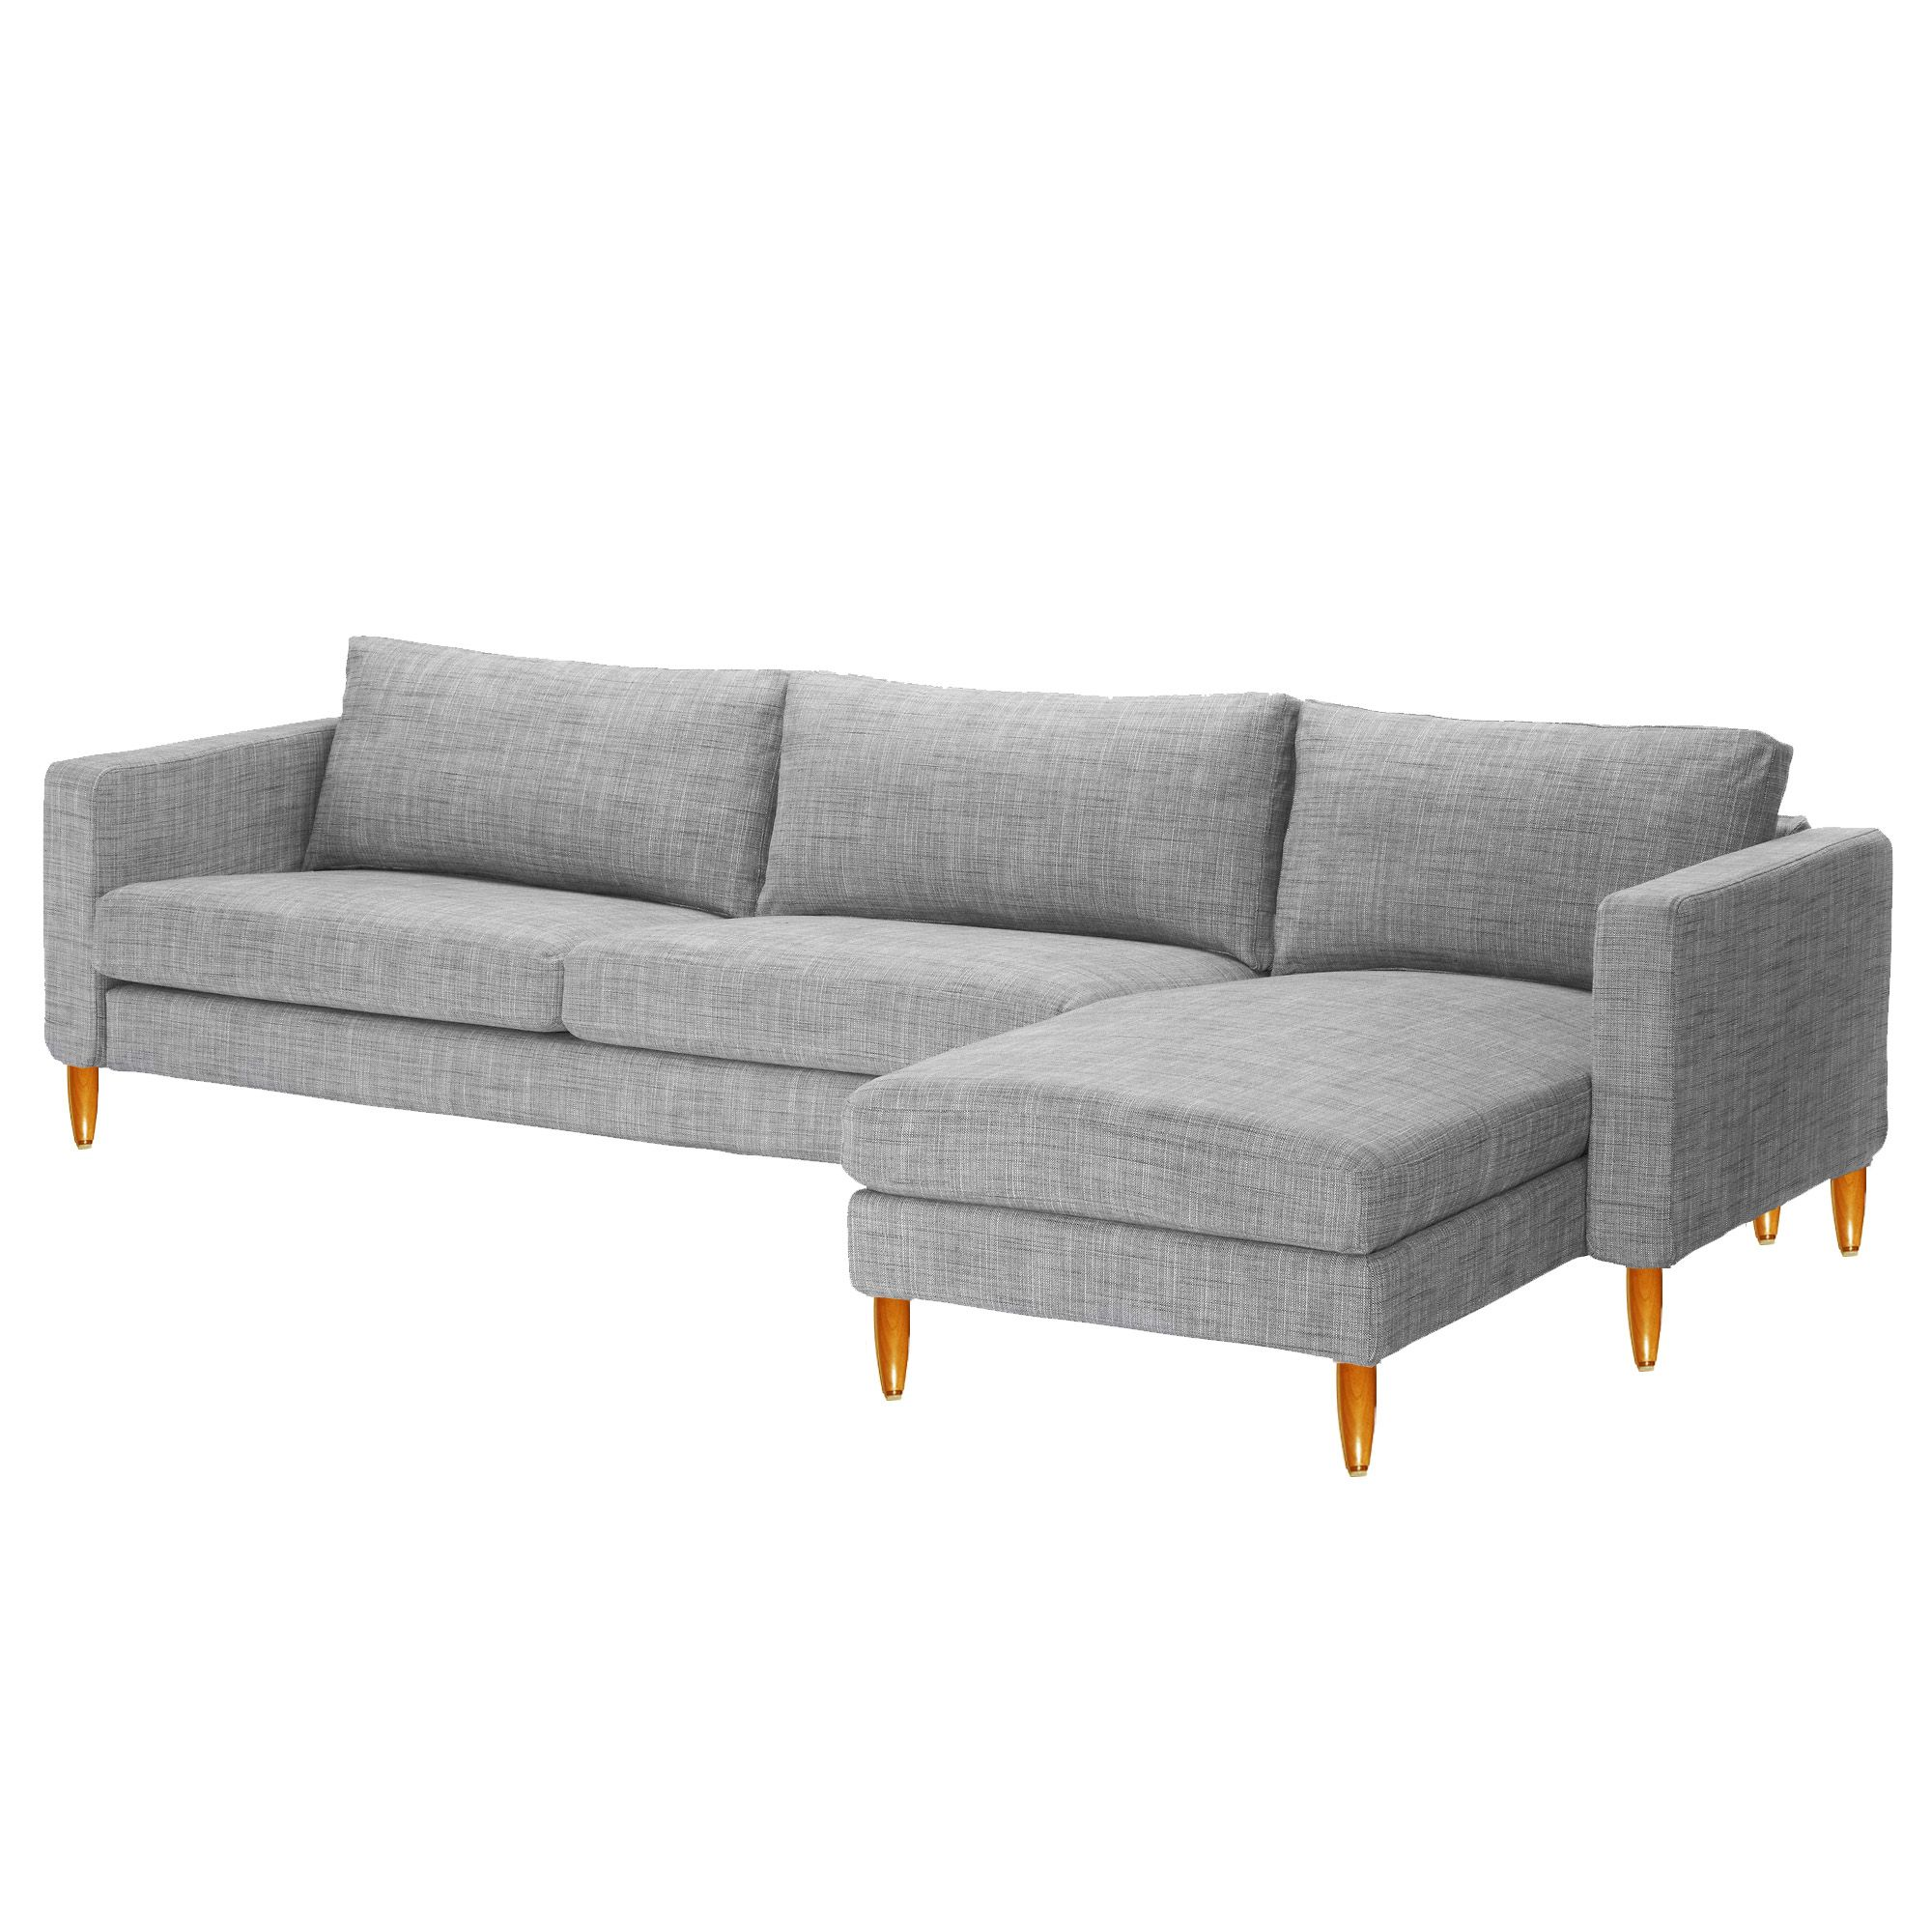 ikea karlstad sofa chaise with new legs 610 total bought - Ikea Karlstad Sofa